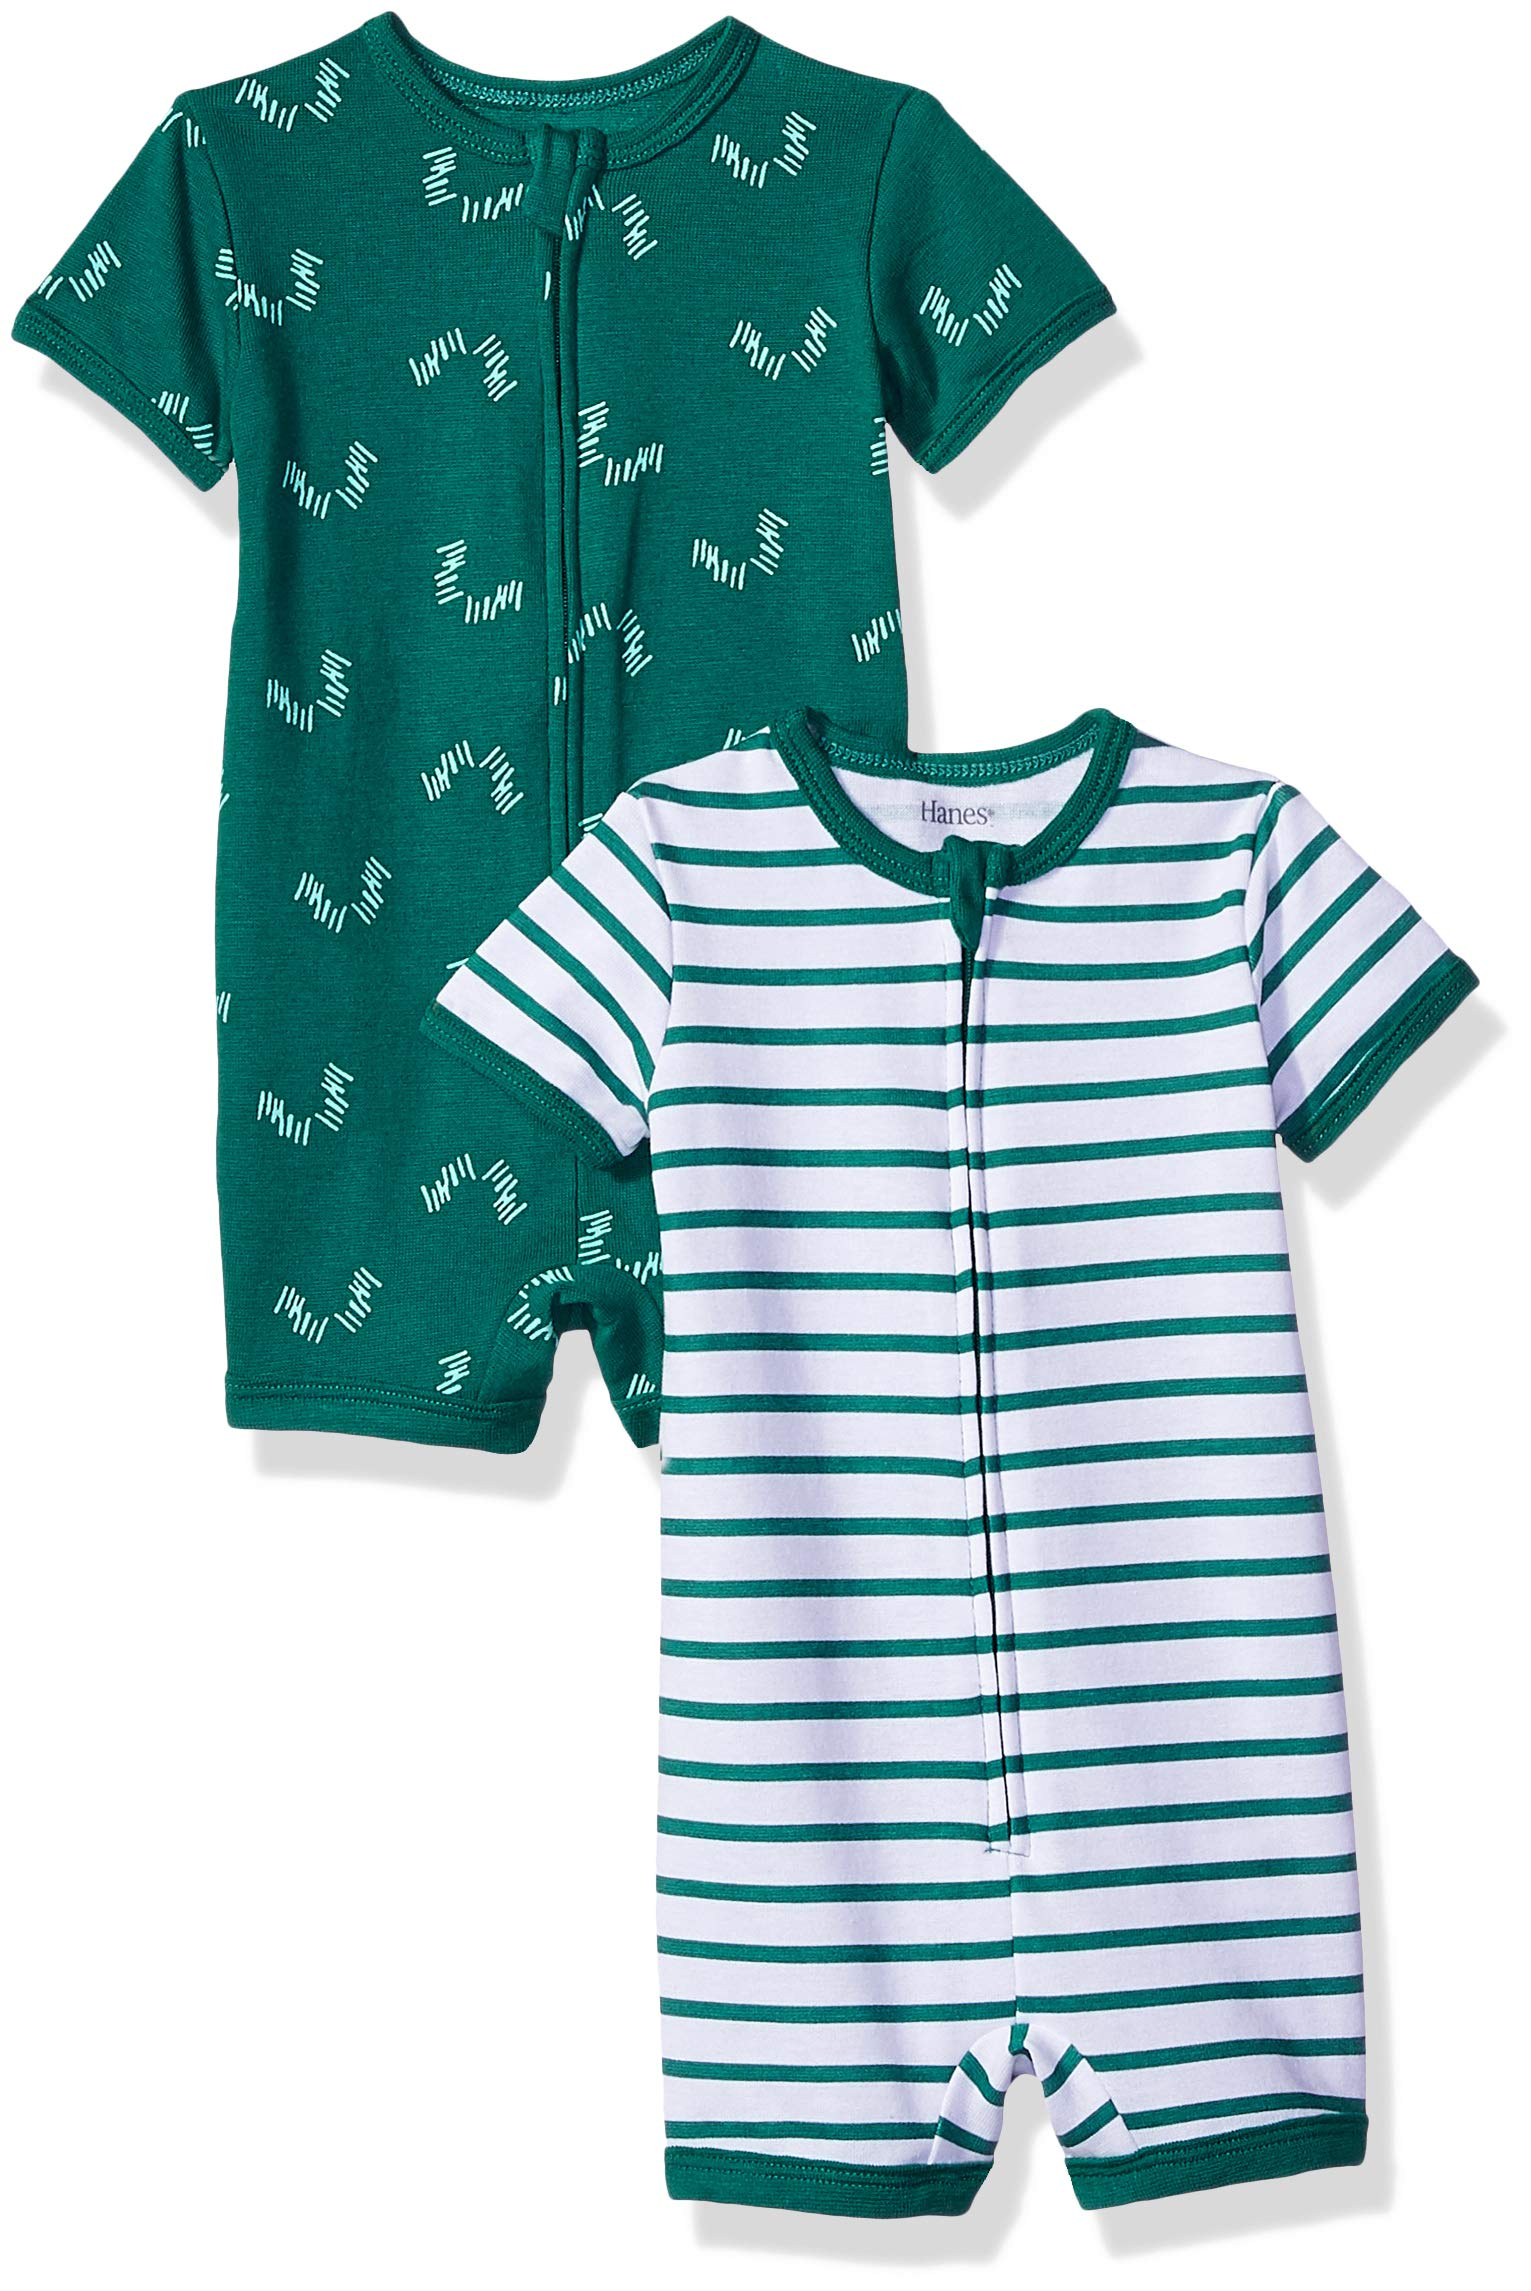 Hanes Ultimate Baby Zippin 2 Pack Rompers, Green Stripes, 6-12 Months by Hanes